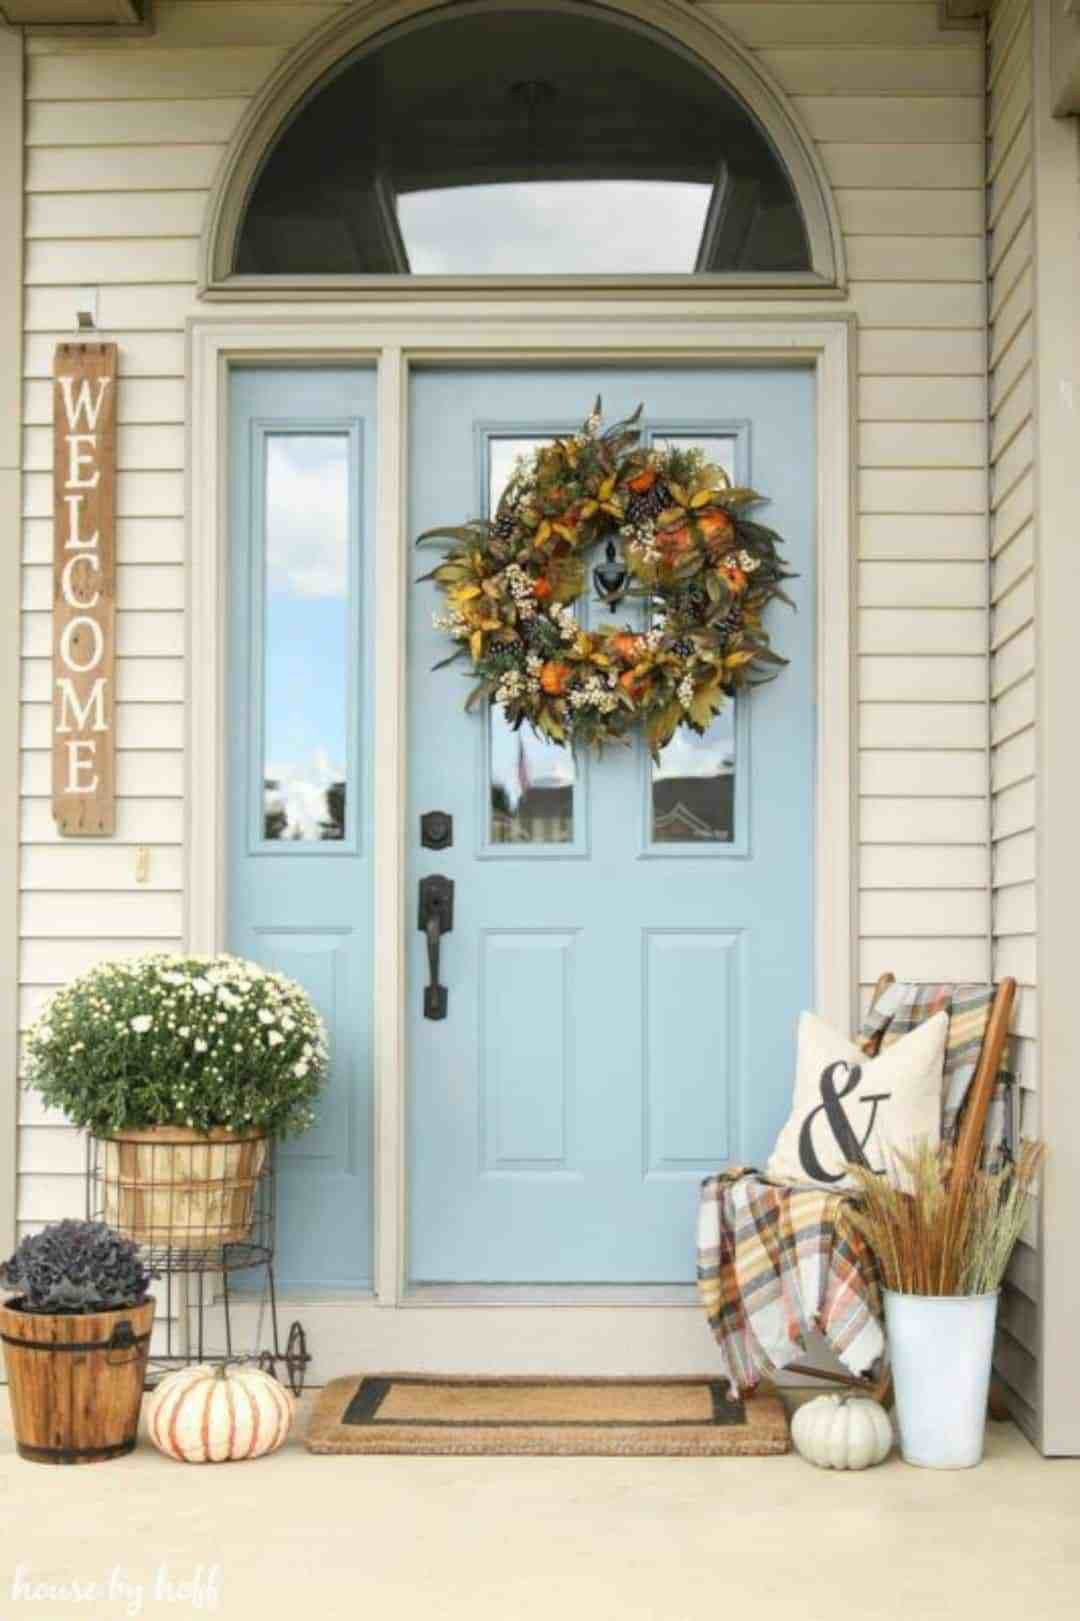 Small Front Porch Decor Ideas Luxury 17 Impressive Front Porch Decorating Ideas Futurist Architecture